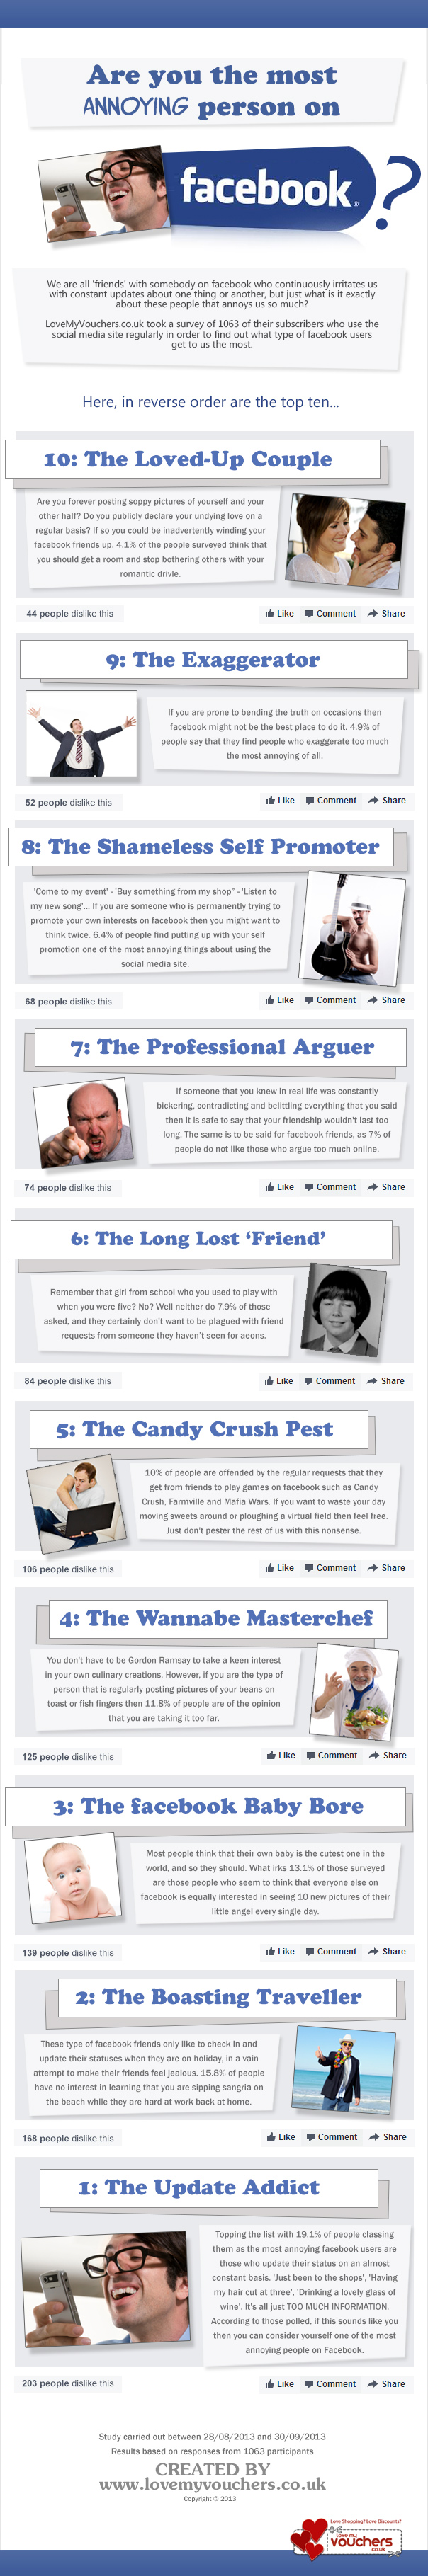 The 10 Most Annoying Types Of People On Facebook image the The 10 most annoying people on facebook